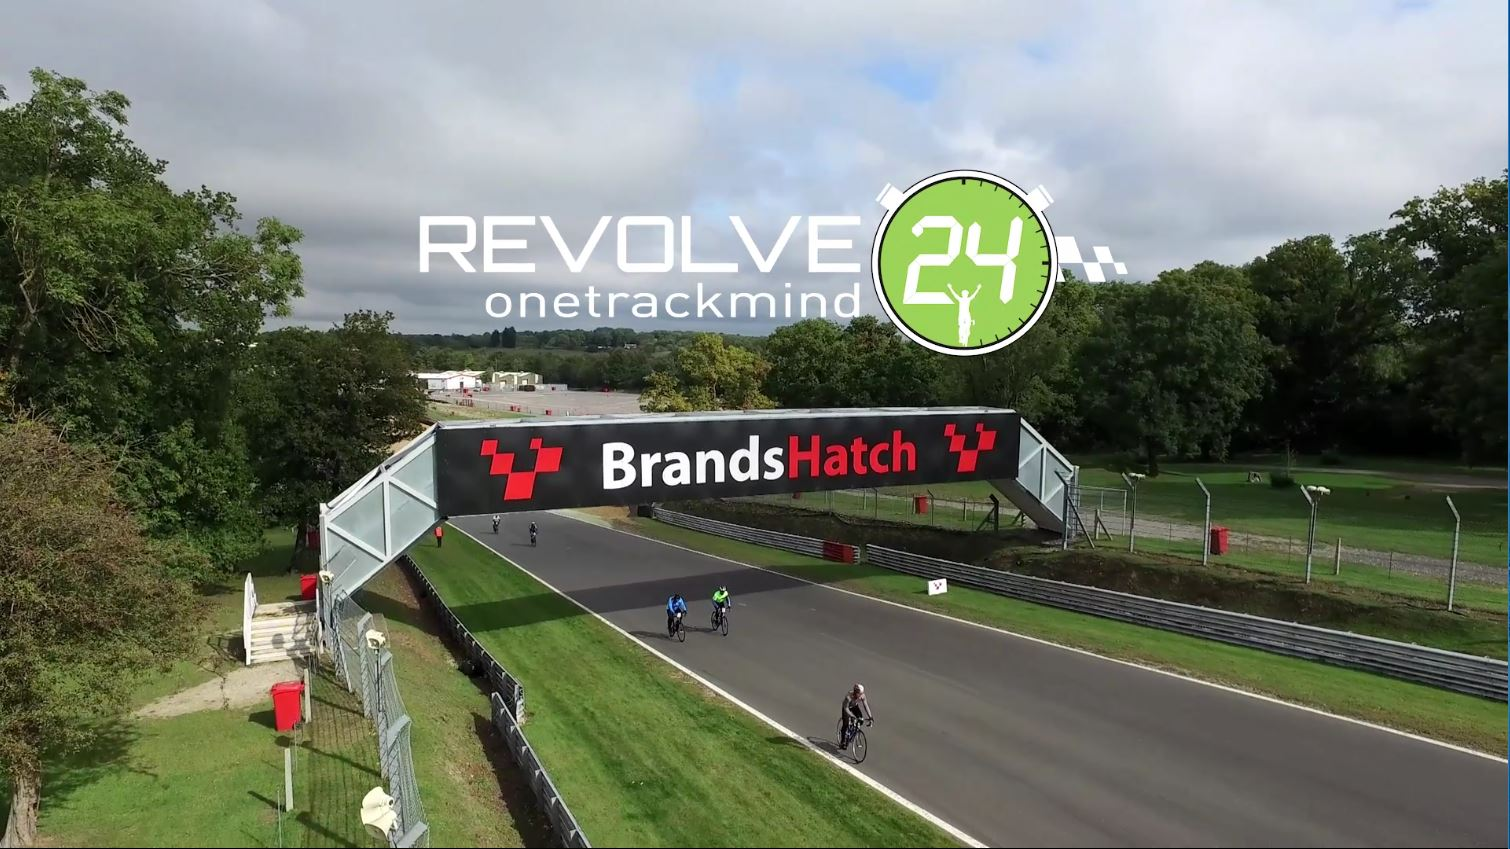 Brands Hatch cycling event